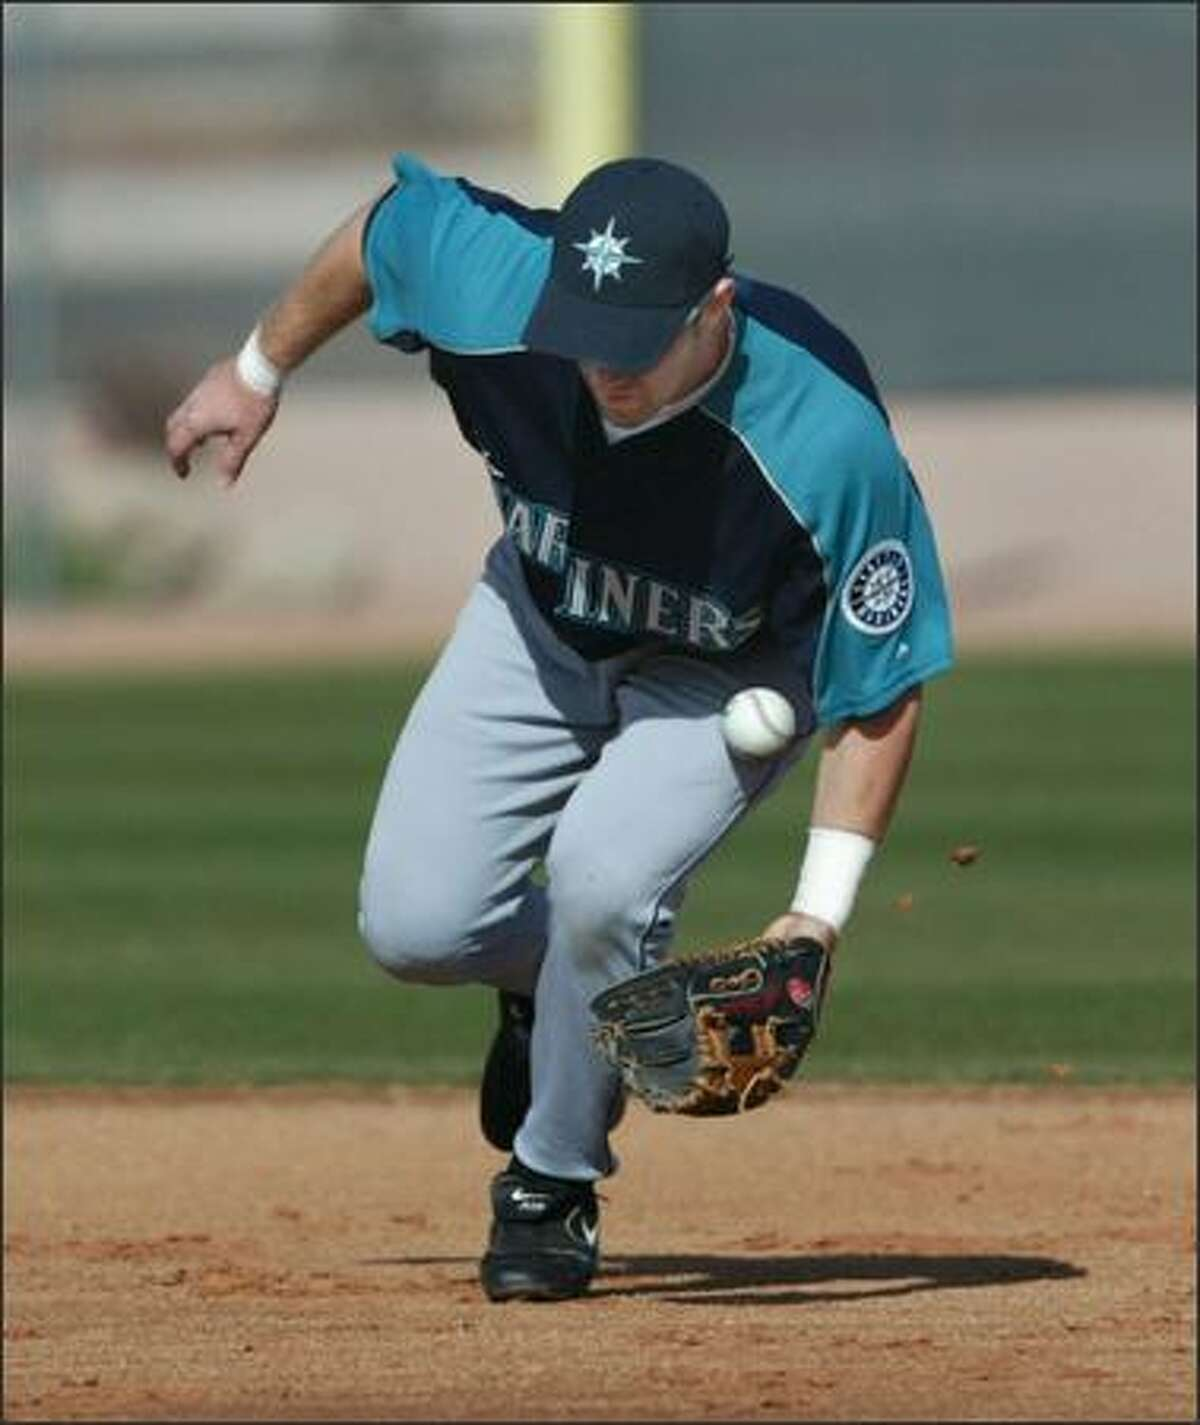 A hard infield caused some interesting hops as Willie Bloomquist found out while taking ground balls at shortstop.